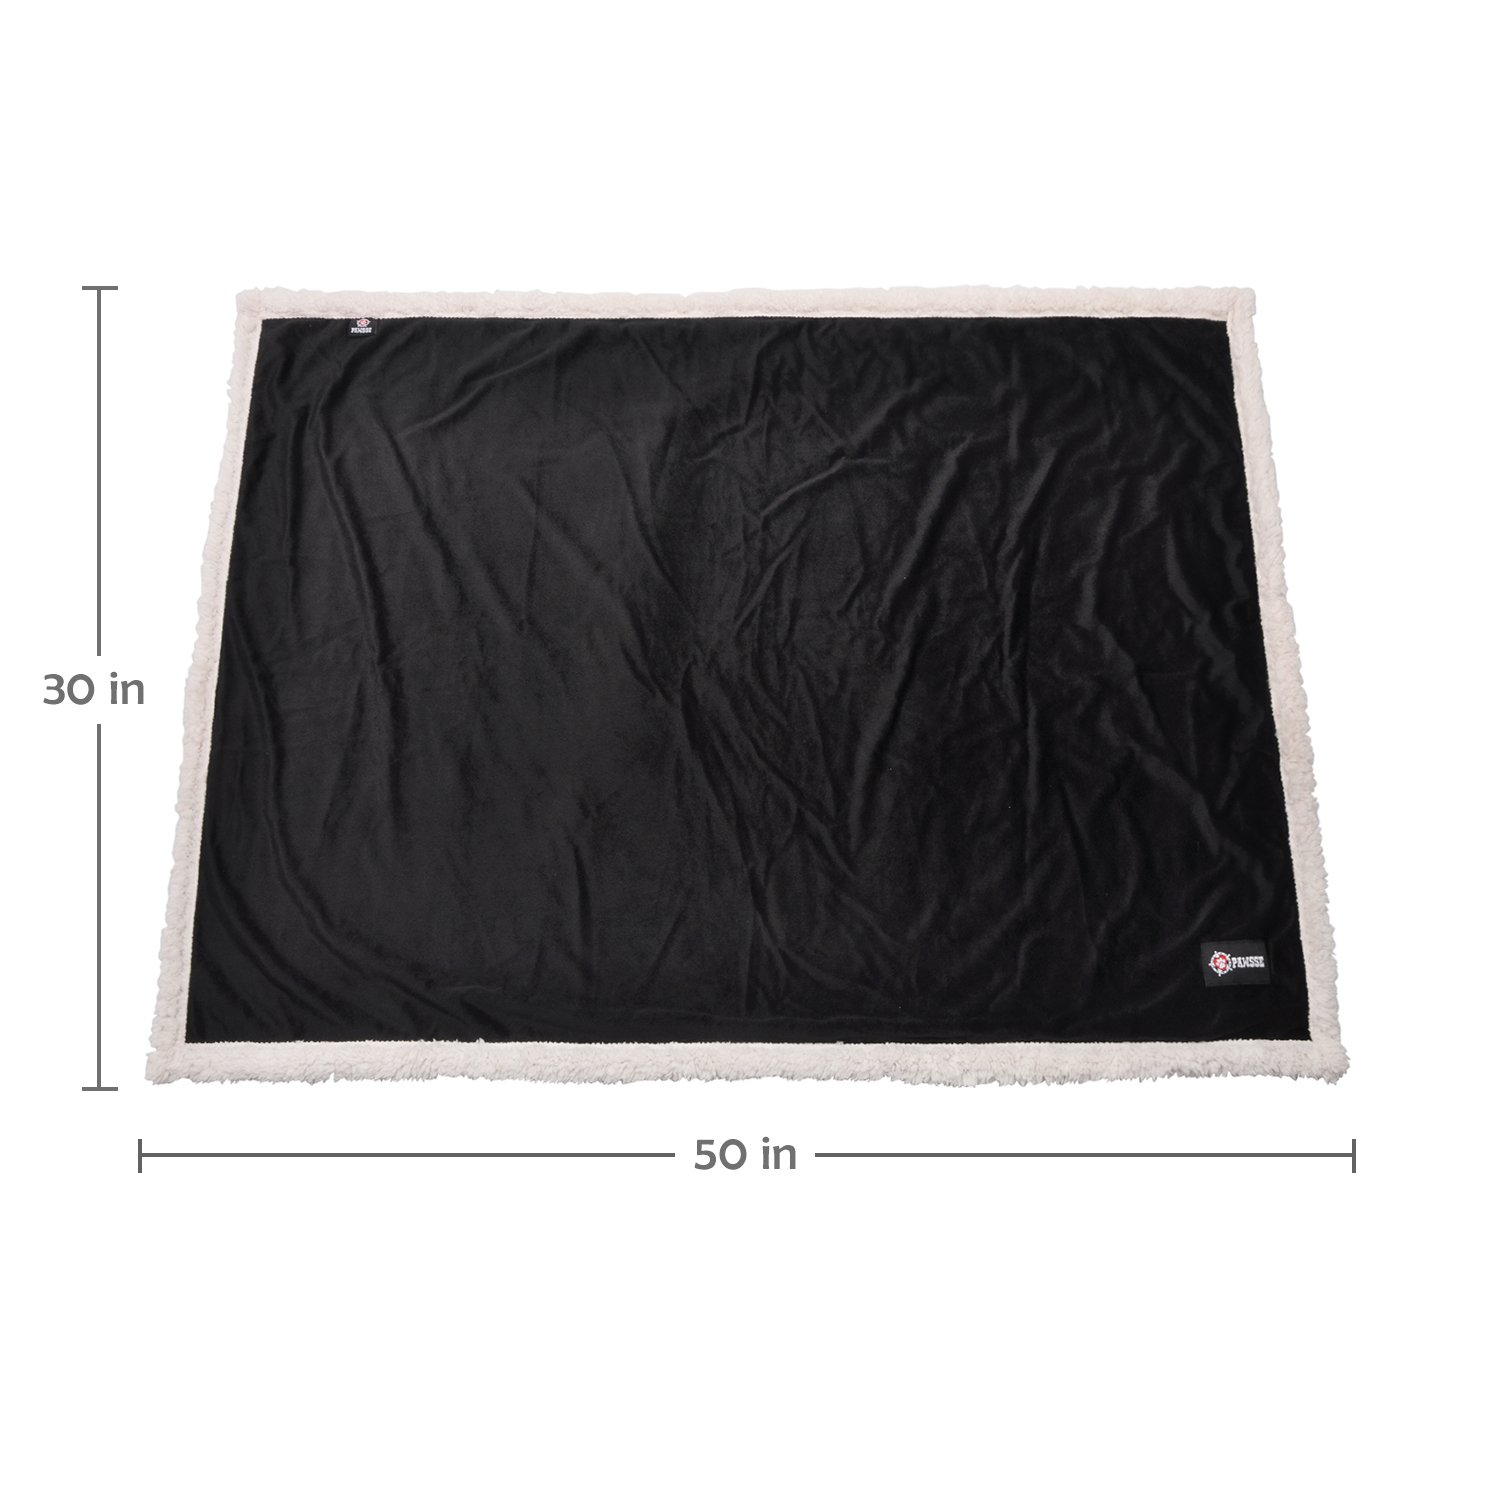 Puppy Blanket,Super Soft Sherpa Dog Blankets and Throws Cat Fleece Sleeping Mat for Pet Small Animals 45x30 Black by Pawsse (Image #7)